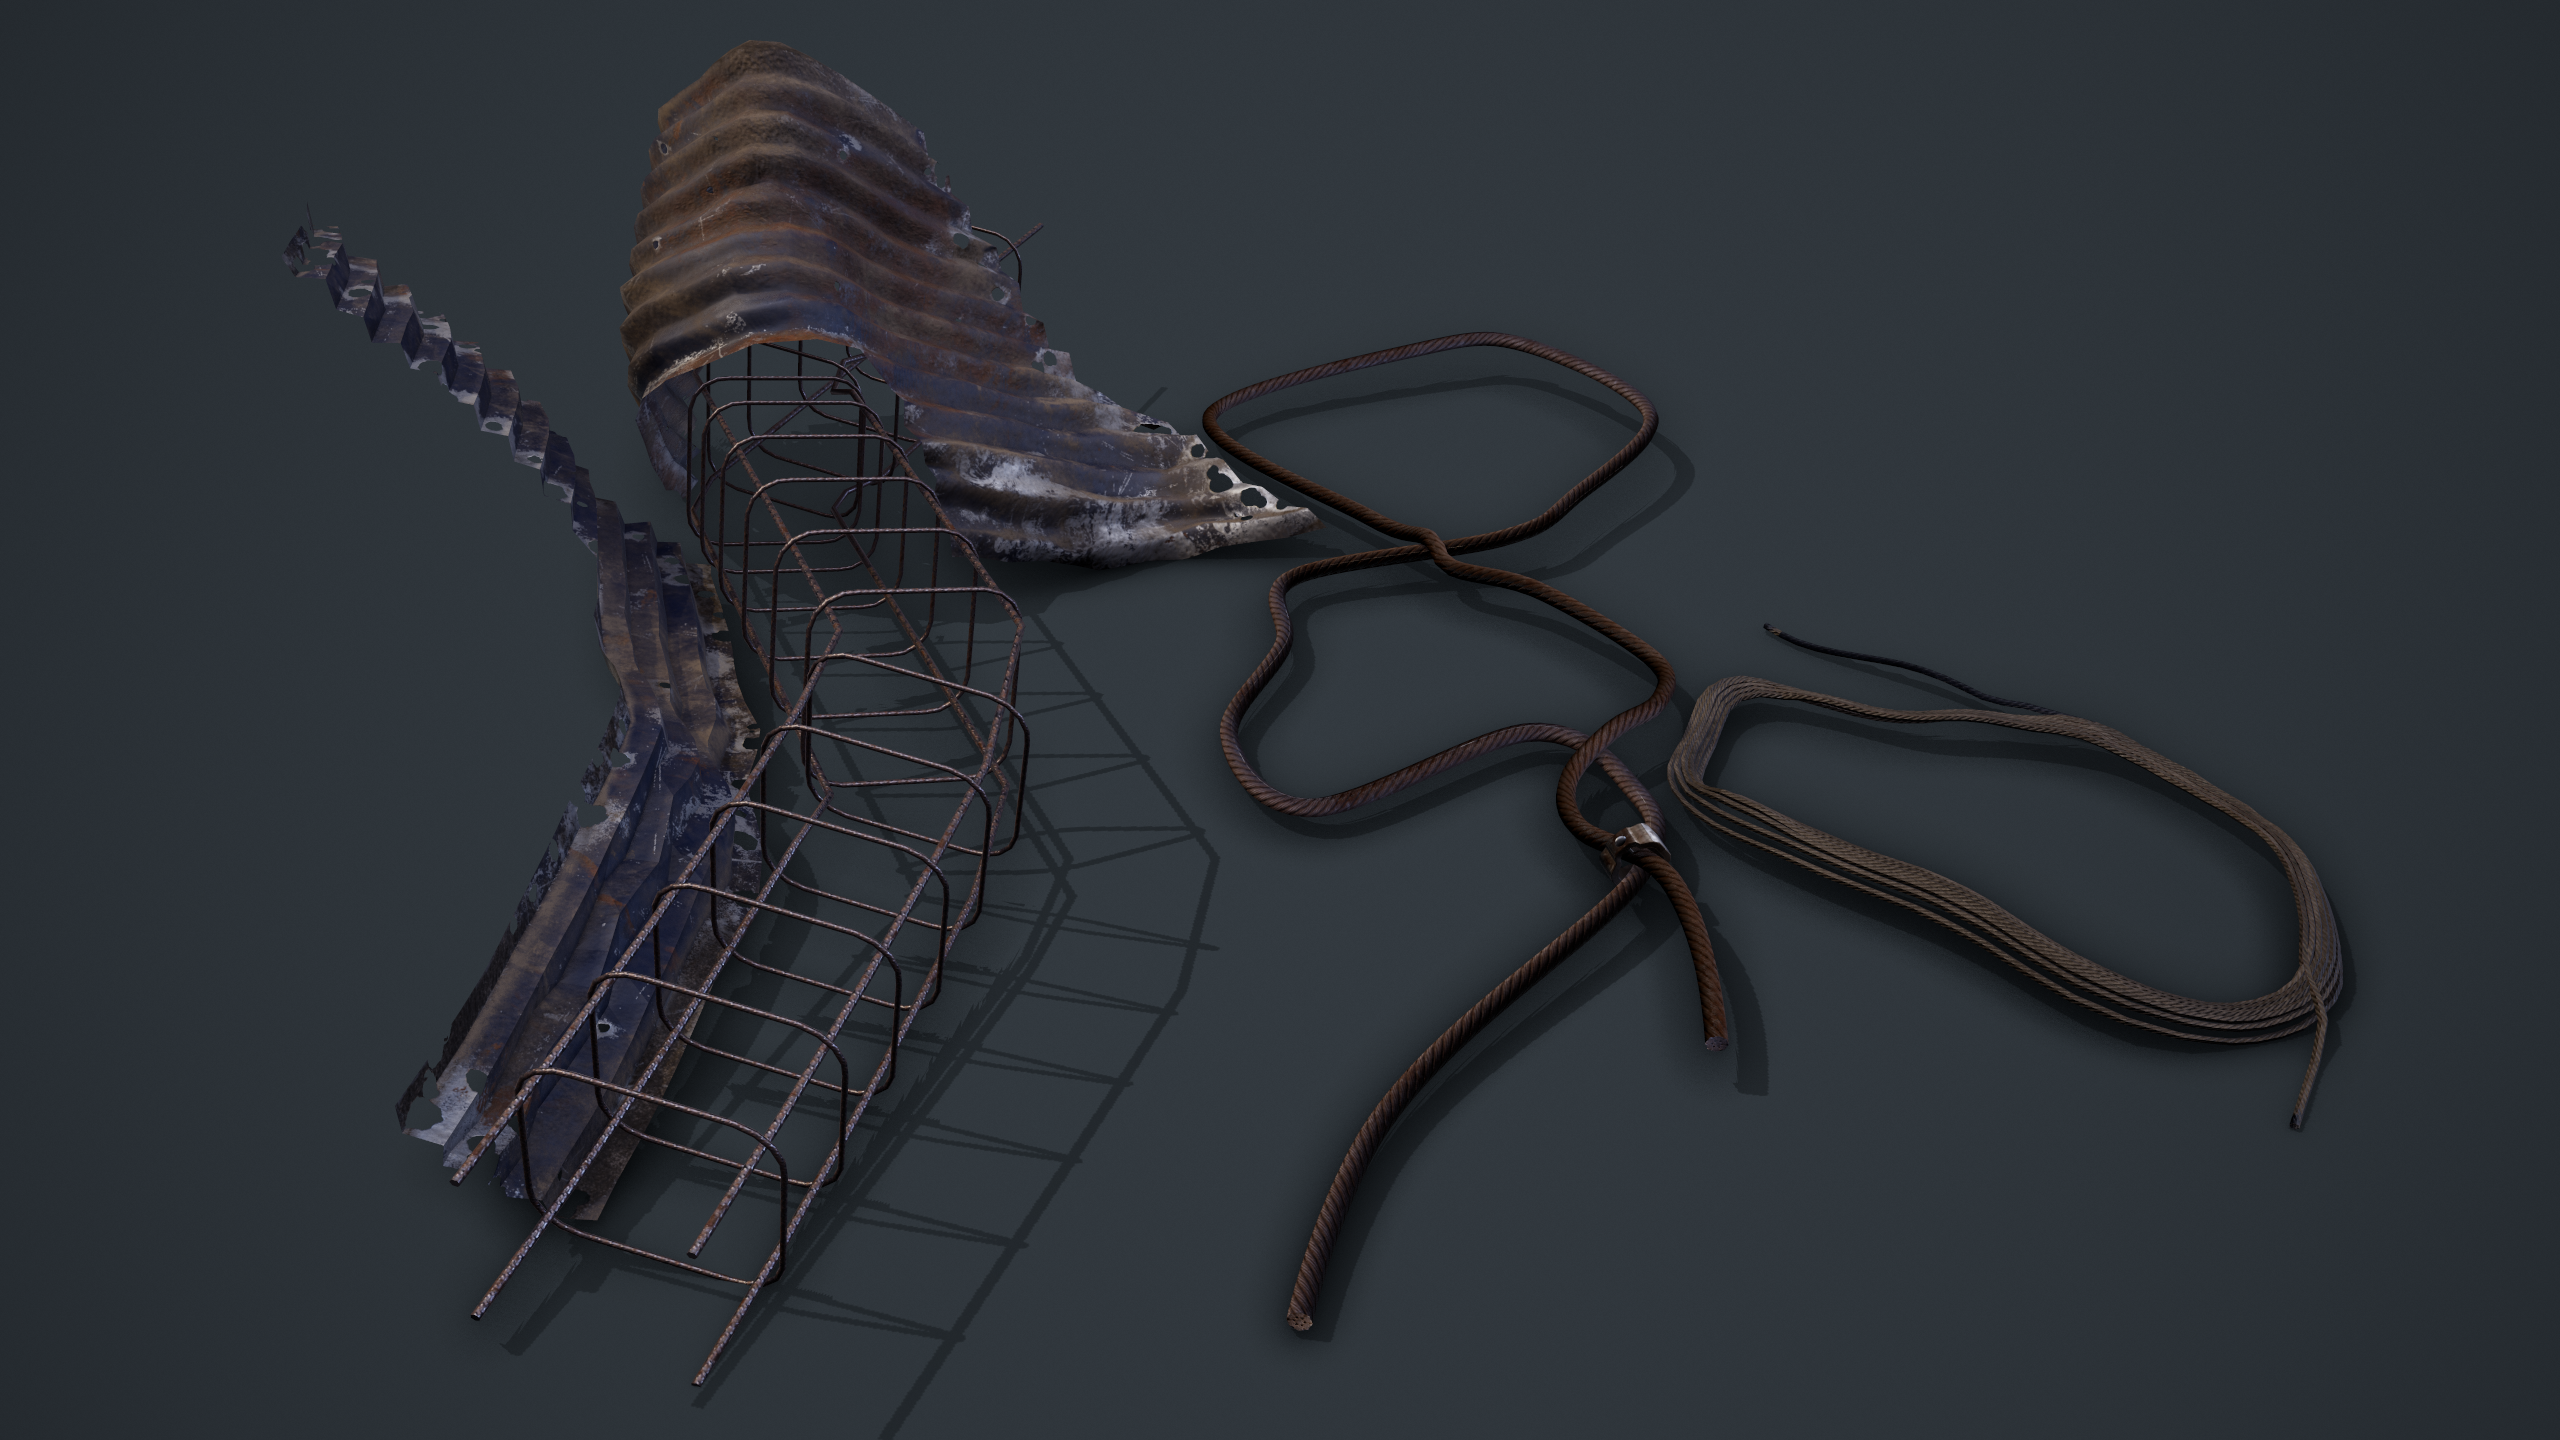 Toolbag rendered screenshot view of various metal cables, damaged metal sheets and metal bars